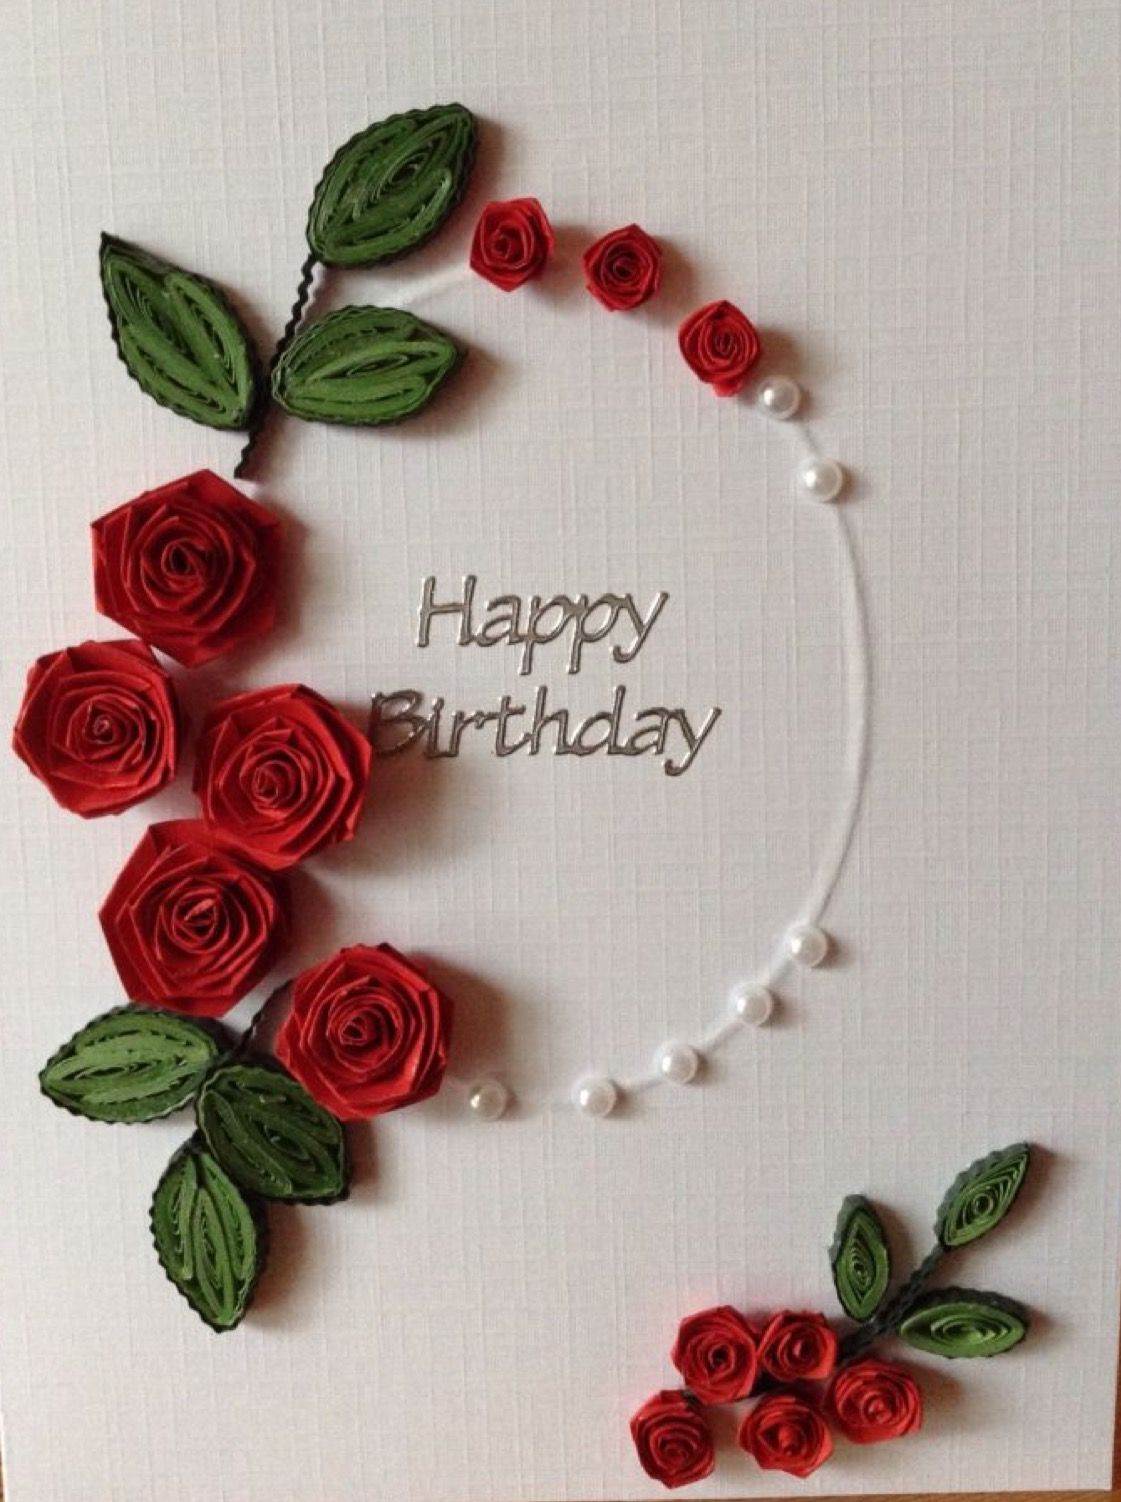 Pin by Grażyna Barna on Kartki | Pinterest | Quilling and Cards